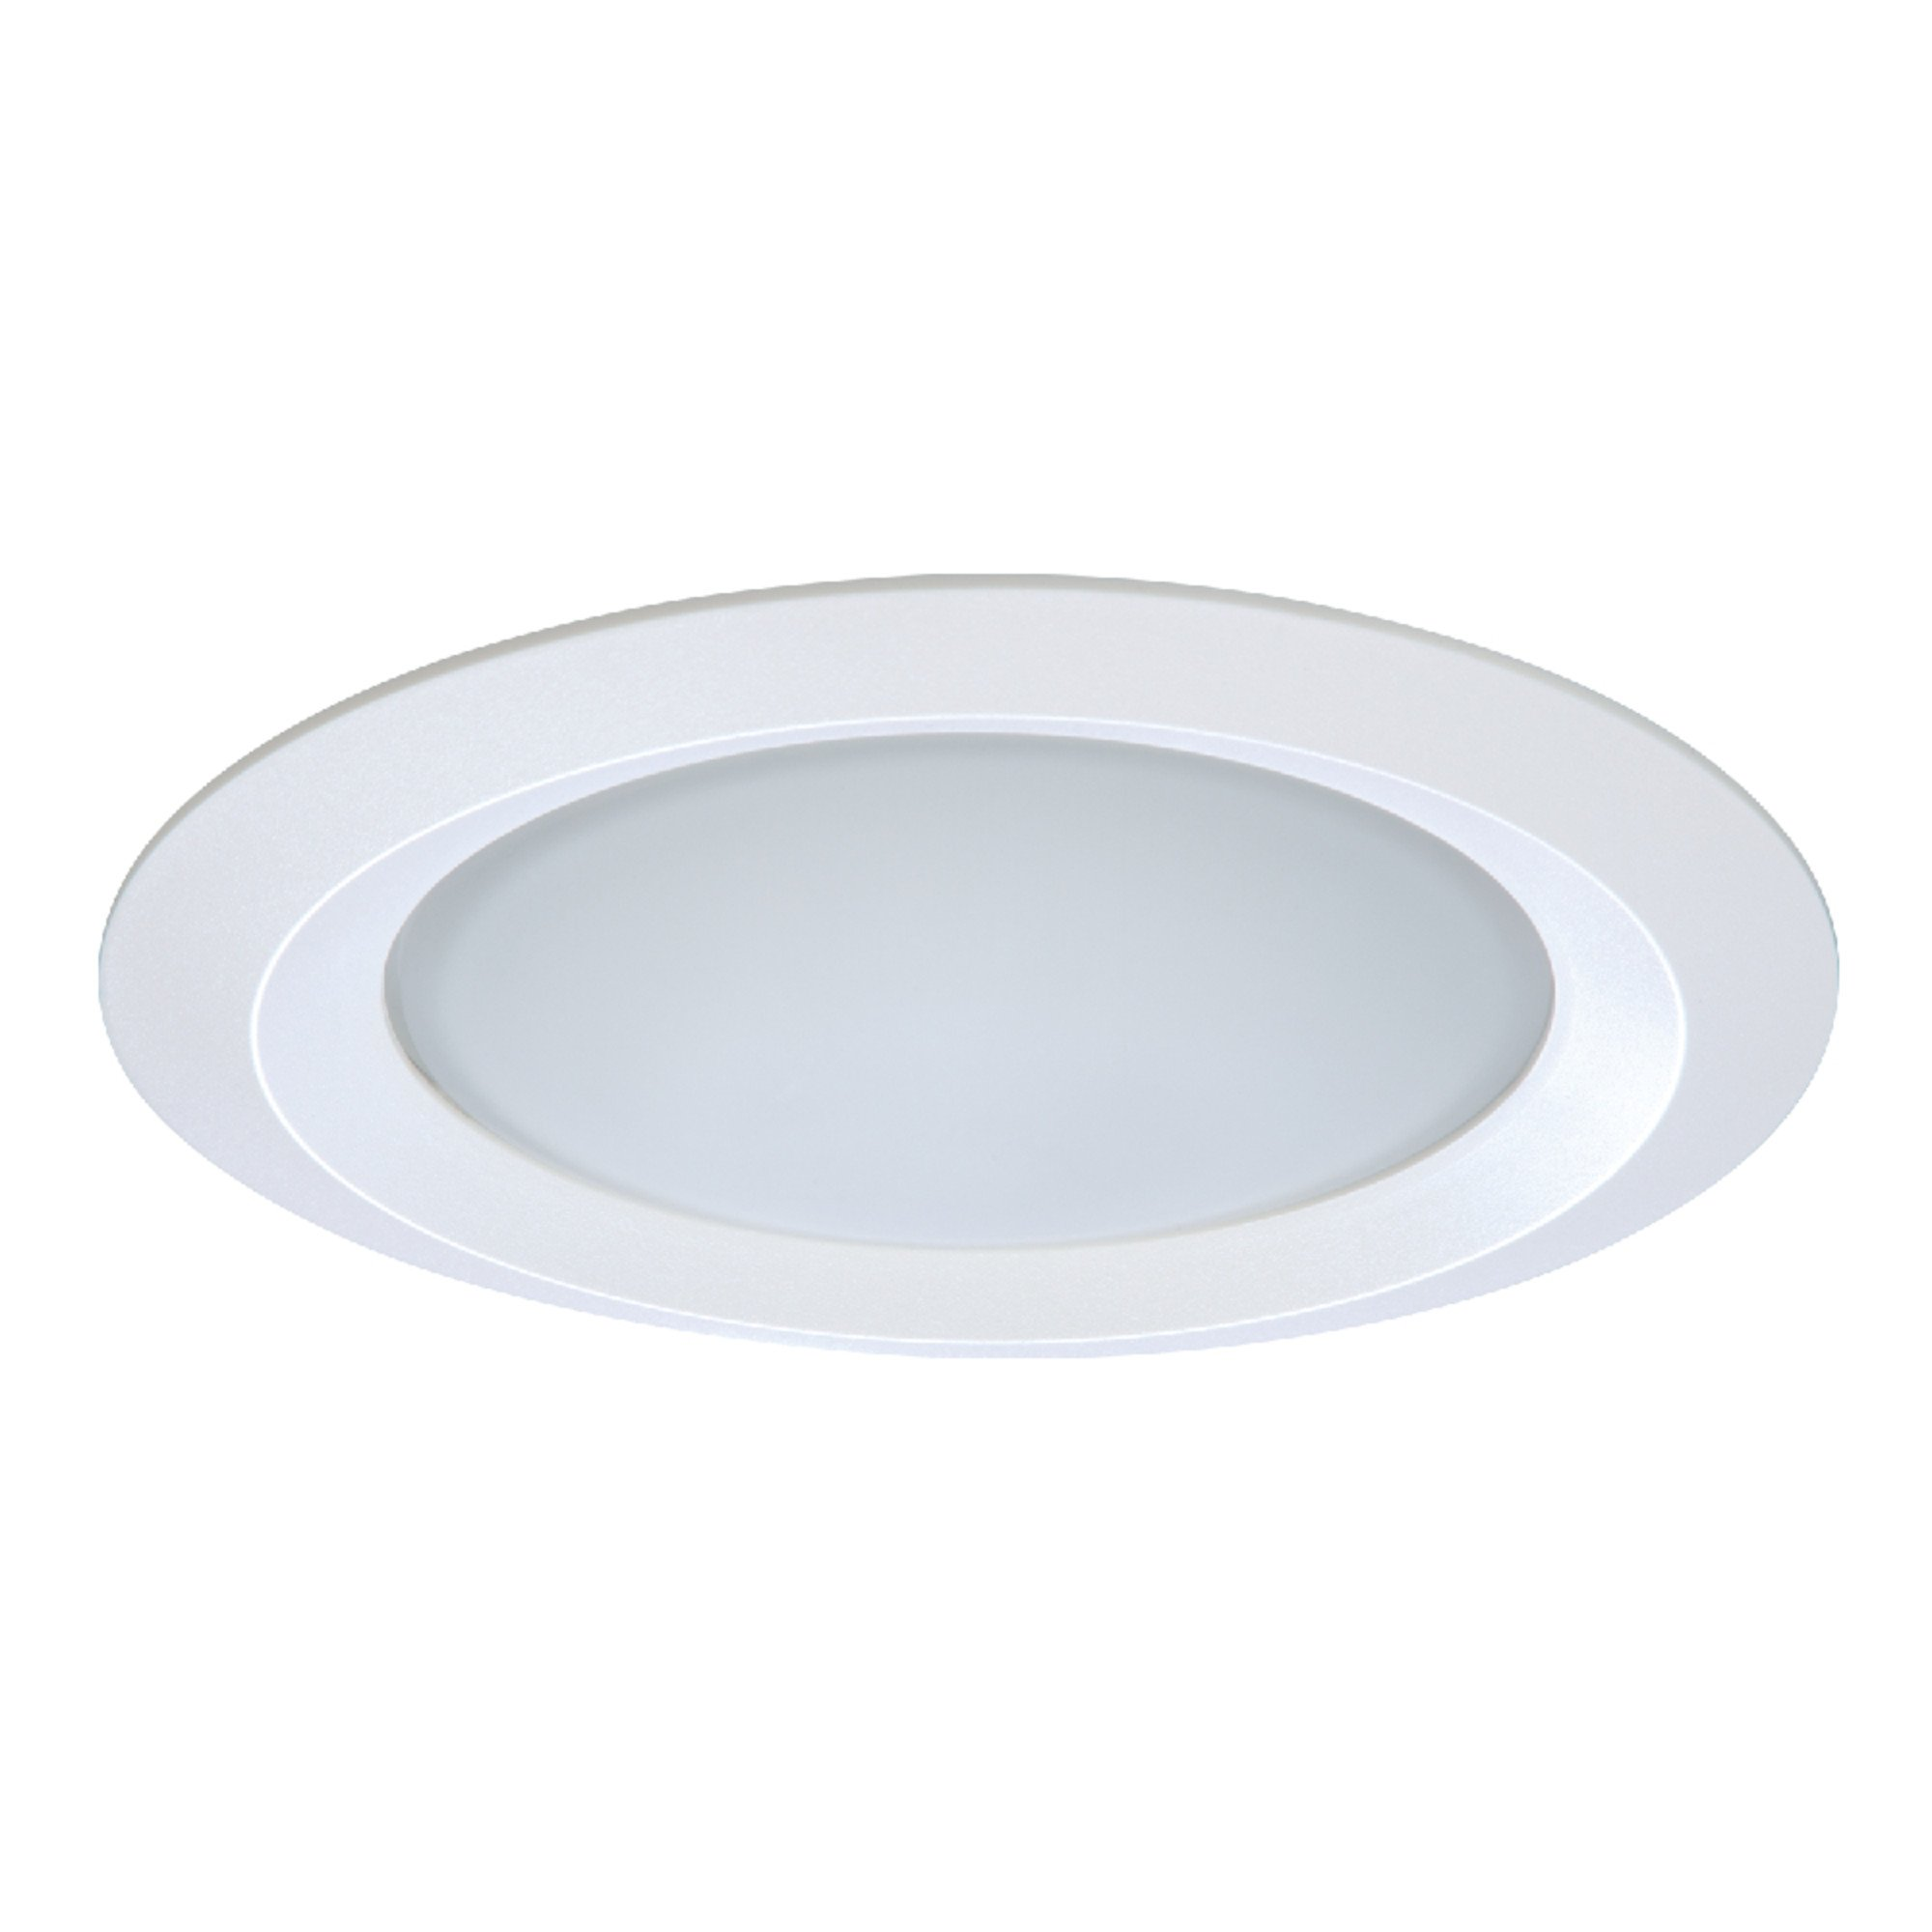 Halo 5150WH E26 Series Recessed Lighting Self Flanged Shower Trim with Frosted Glass Lens, 5'', White